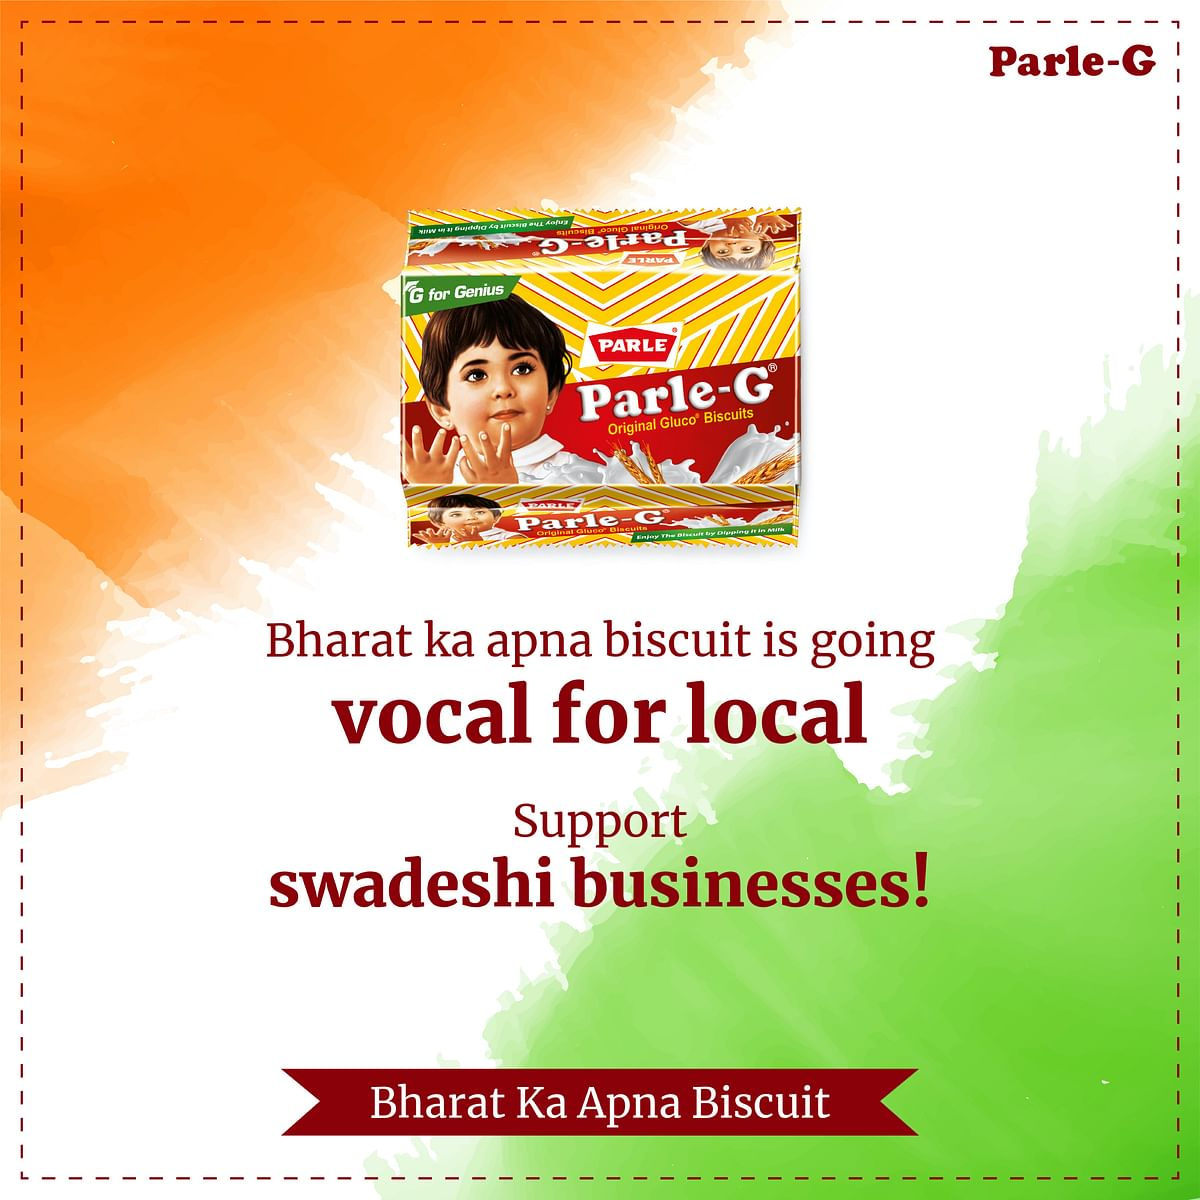 Parle supports #VocalforLocal